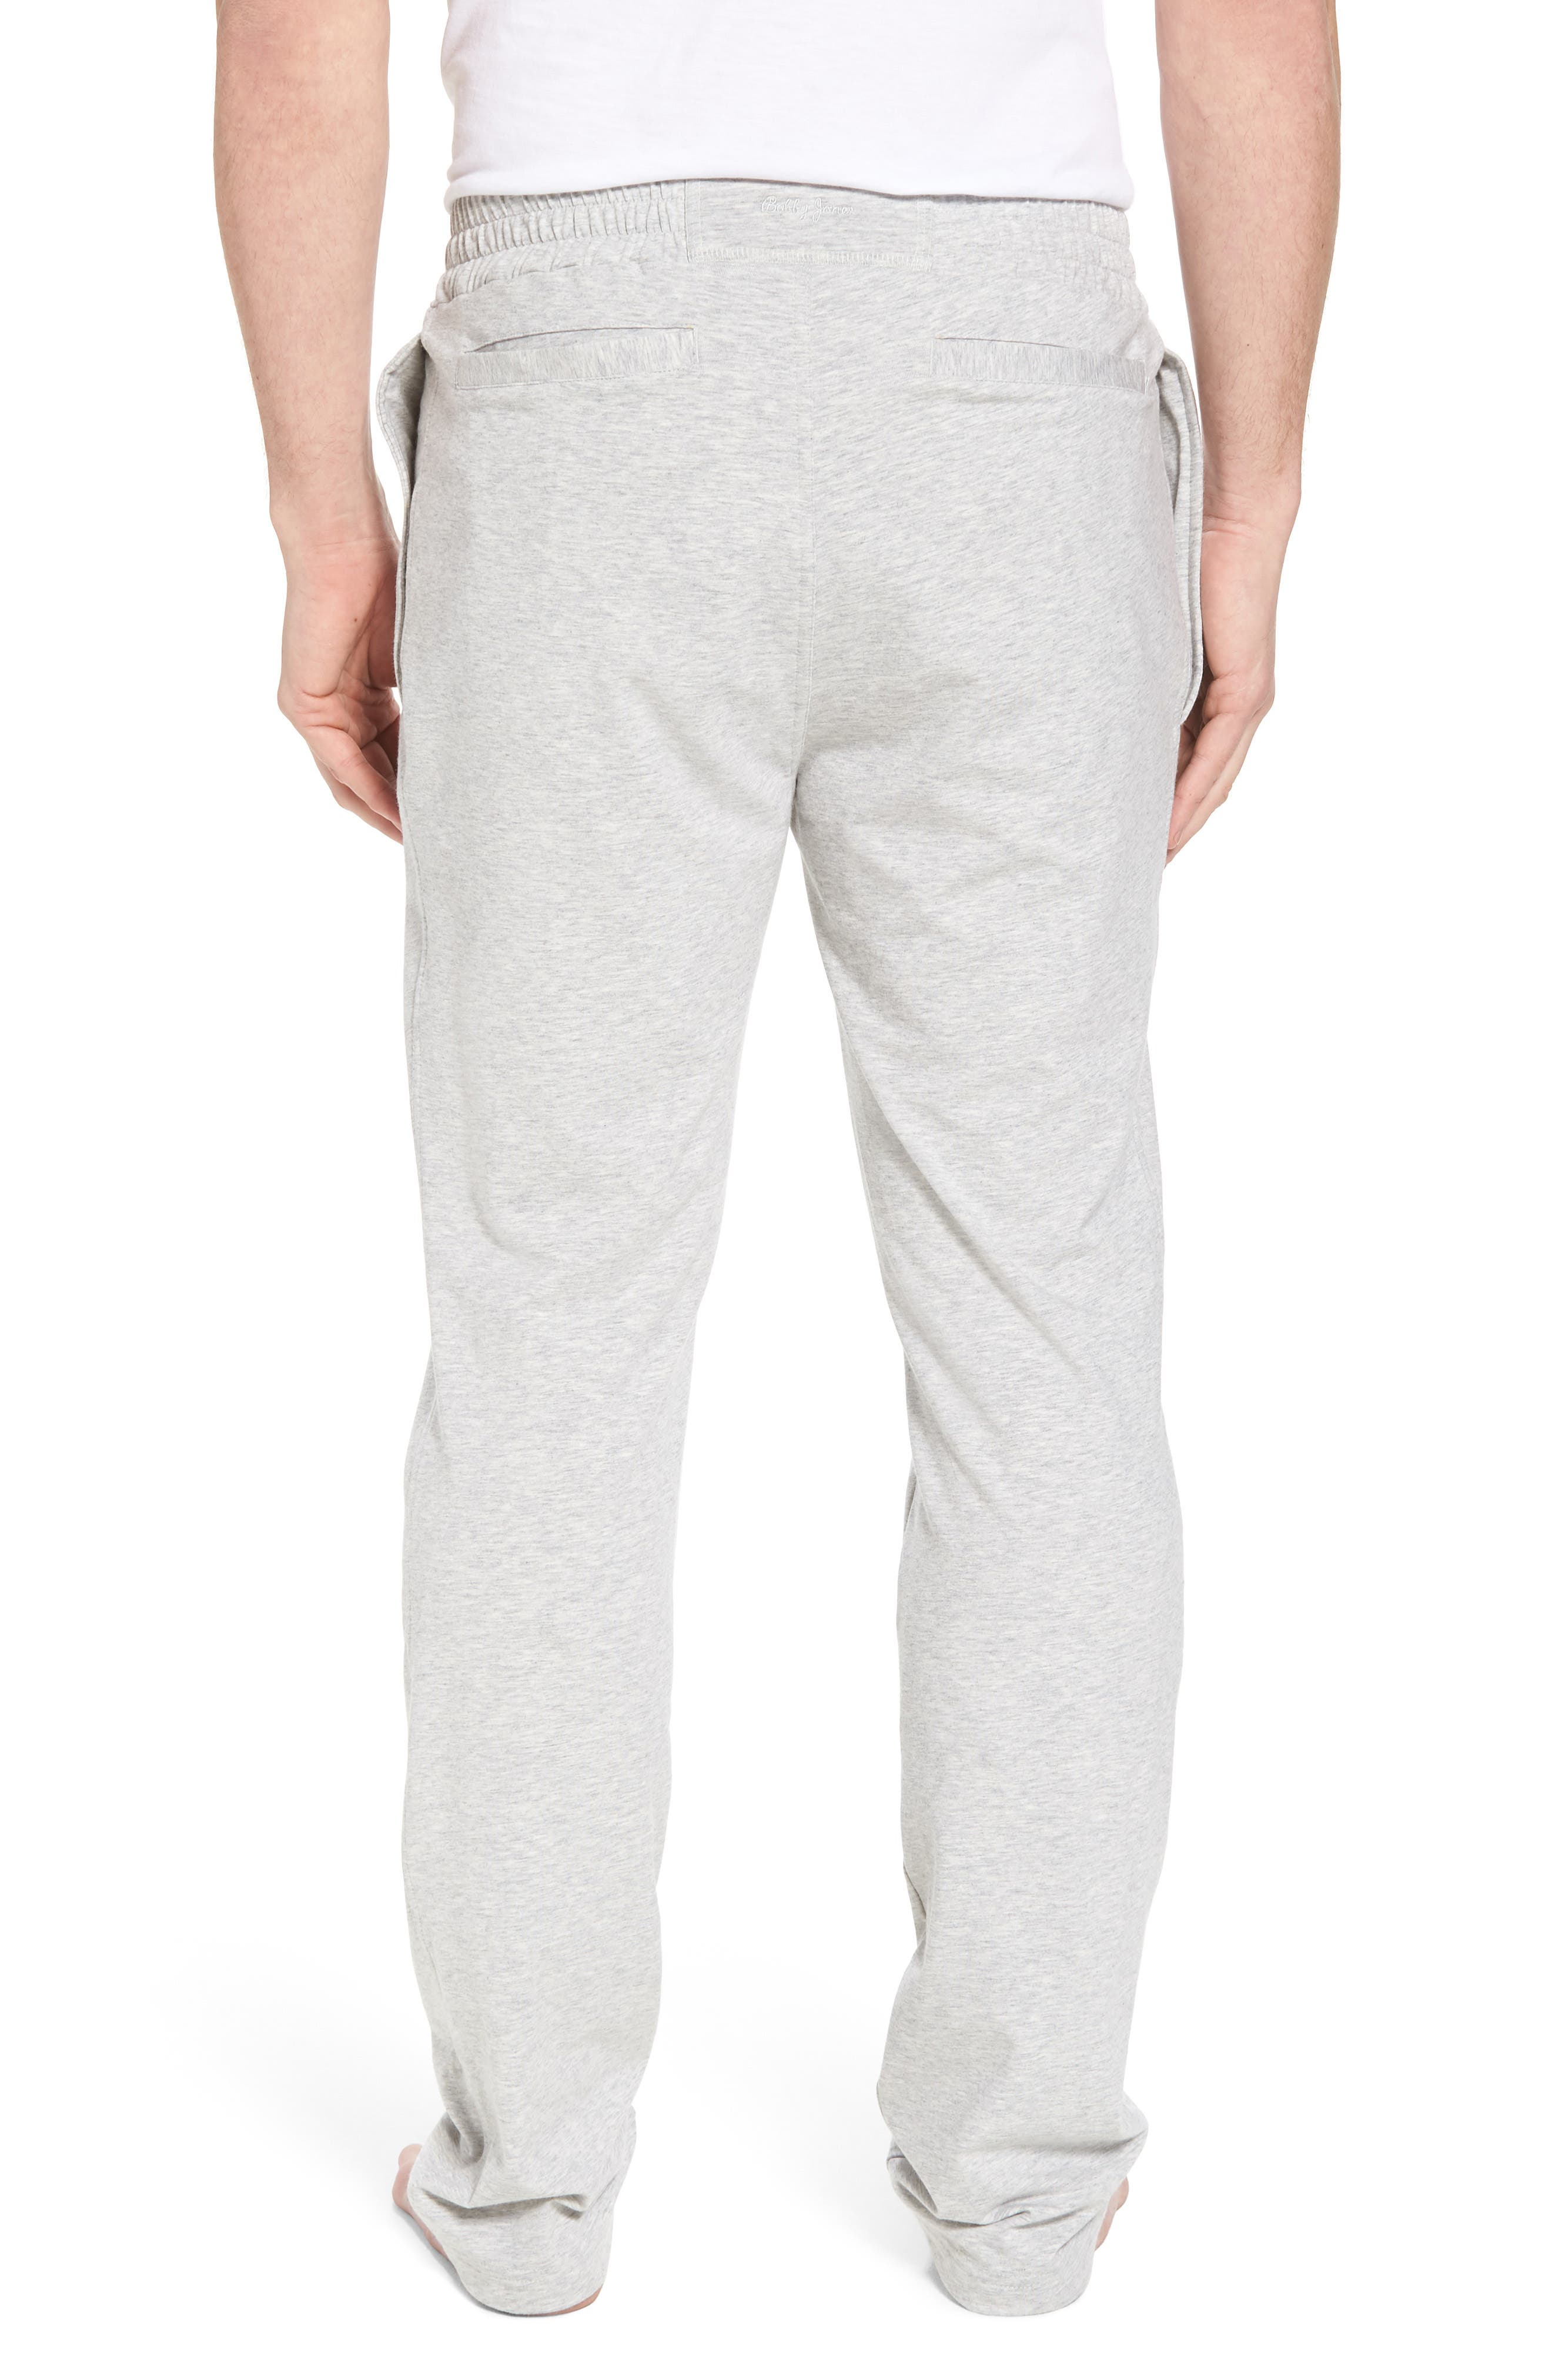 Classic Liquid Cotton Stretch Pants,                             Alternate thumbnail 2, color,                             Heather Grey